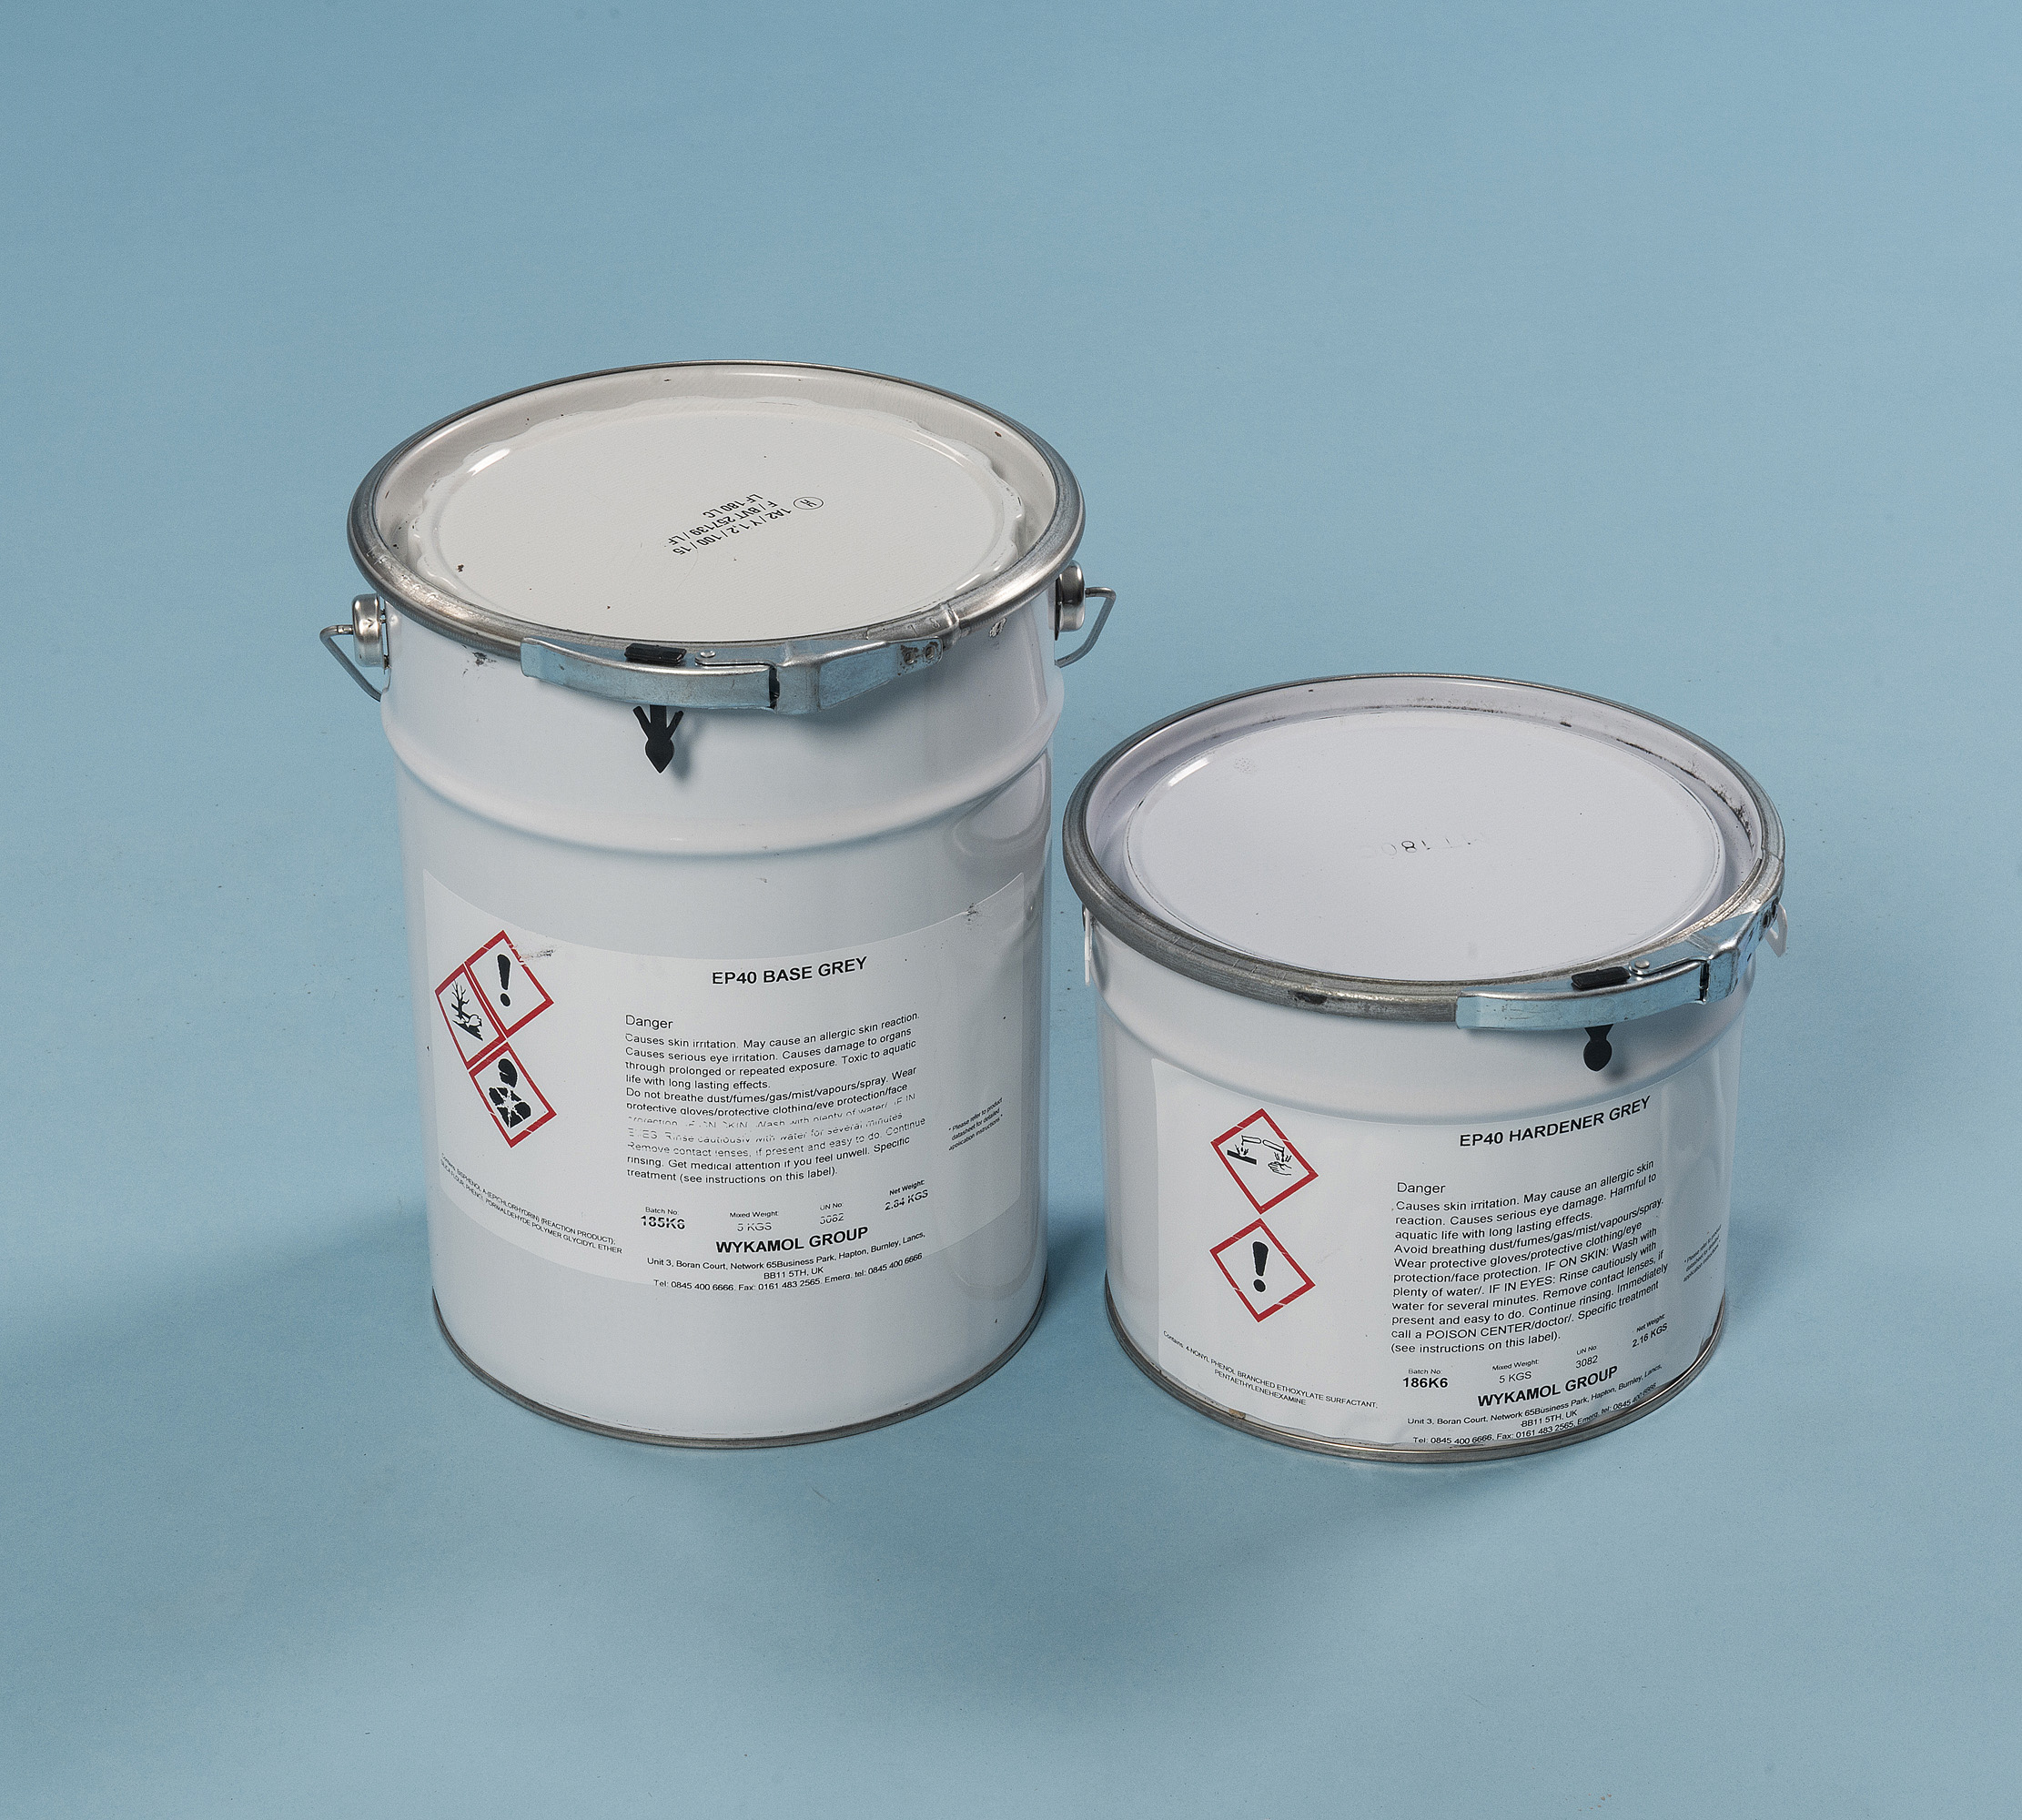 damp proof paint, waterproof paint